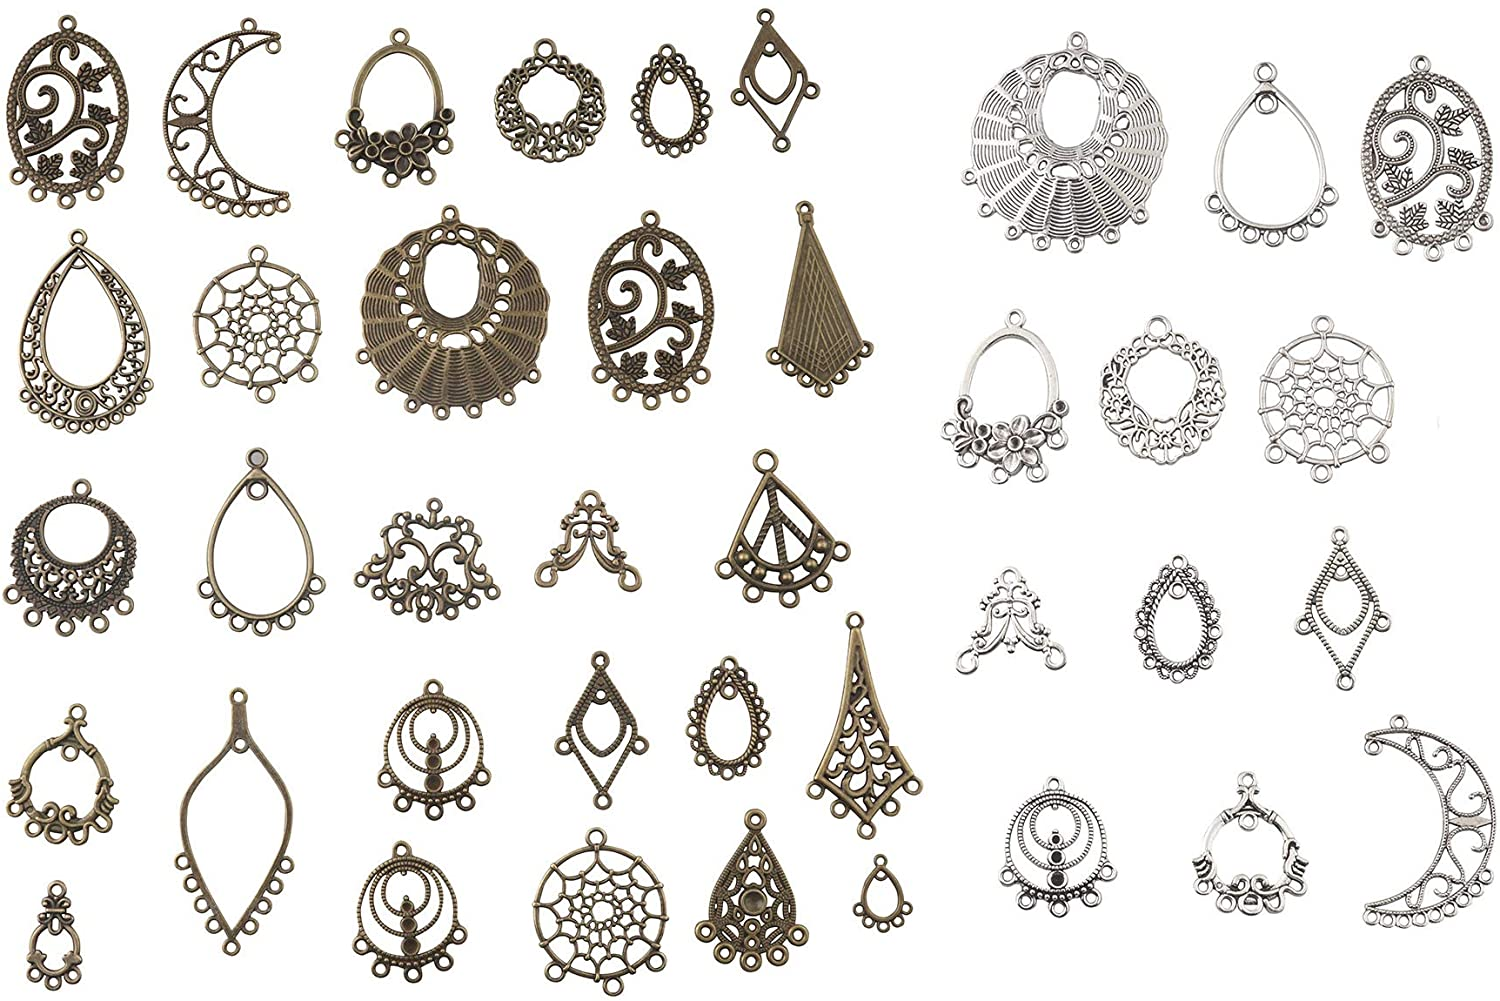 ALLinONE Tibetan Style Connector Earring Chandelier Earring Jewelry Making Kit for Earring Drop and Charm Pendant Assorted Pack (Antique Bronze & Silver 40pcs)